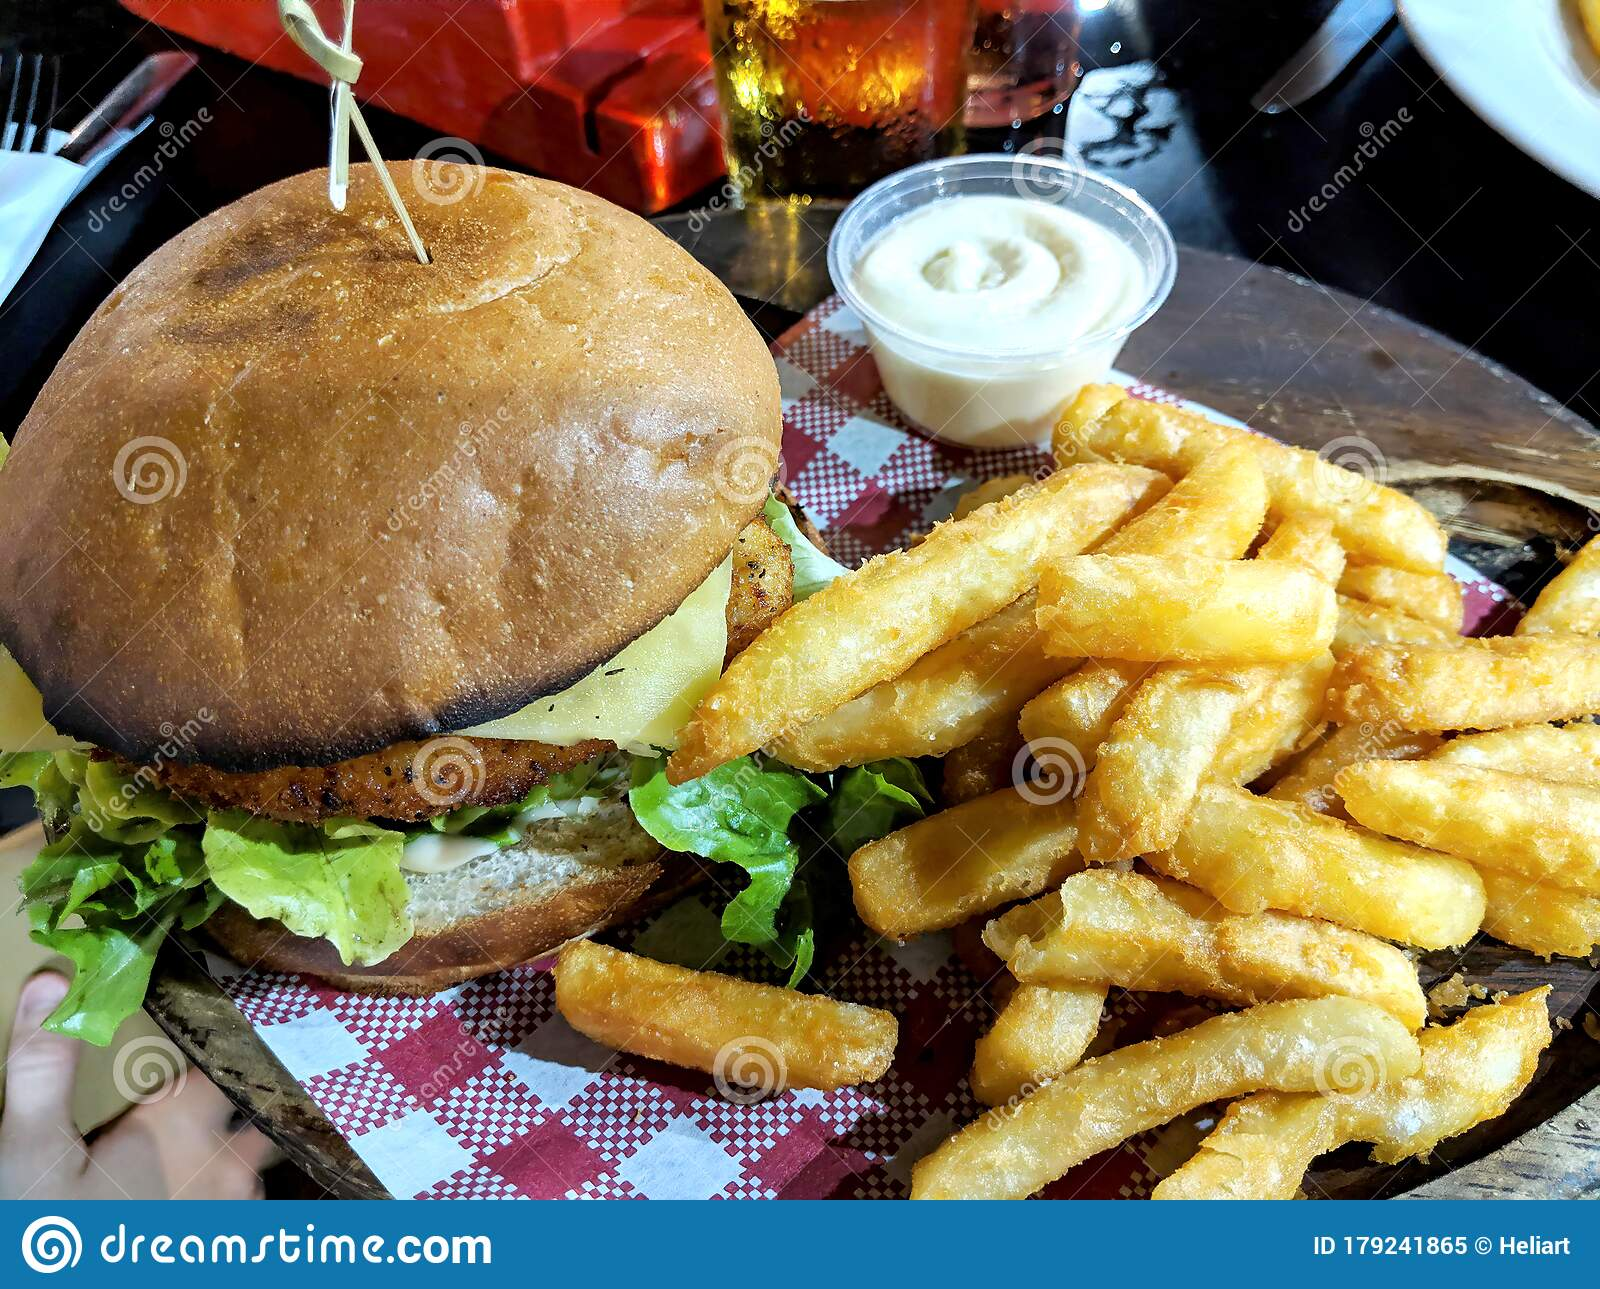 1 066 Schnitzel Burger Photos Free Royalty Free Stock Photos From Dreamstime